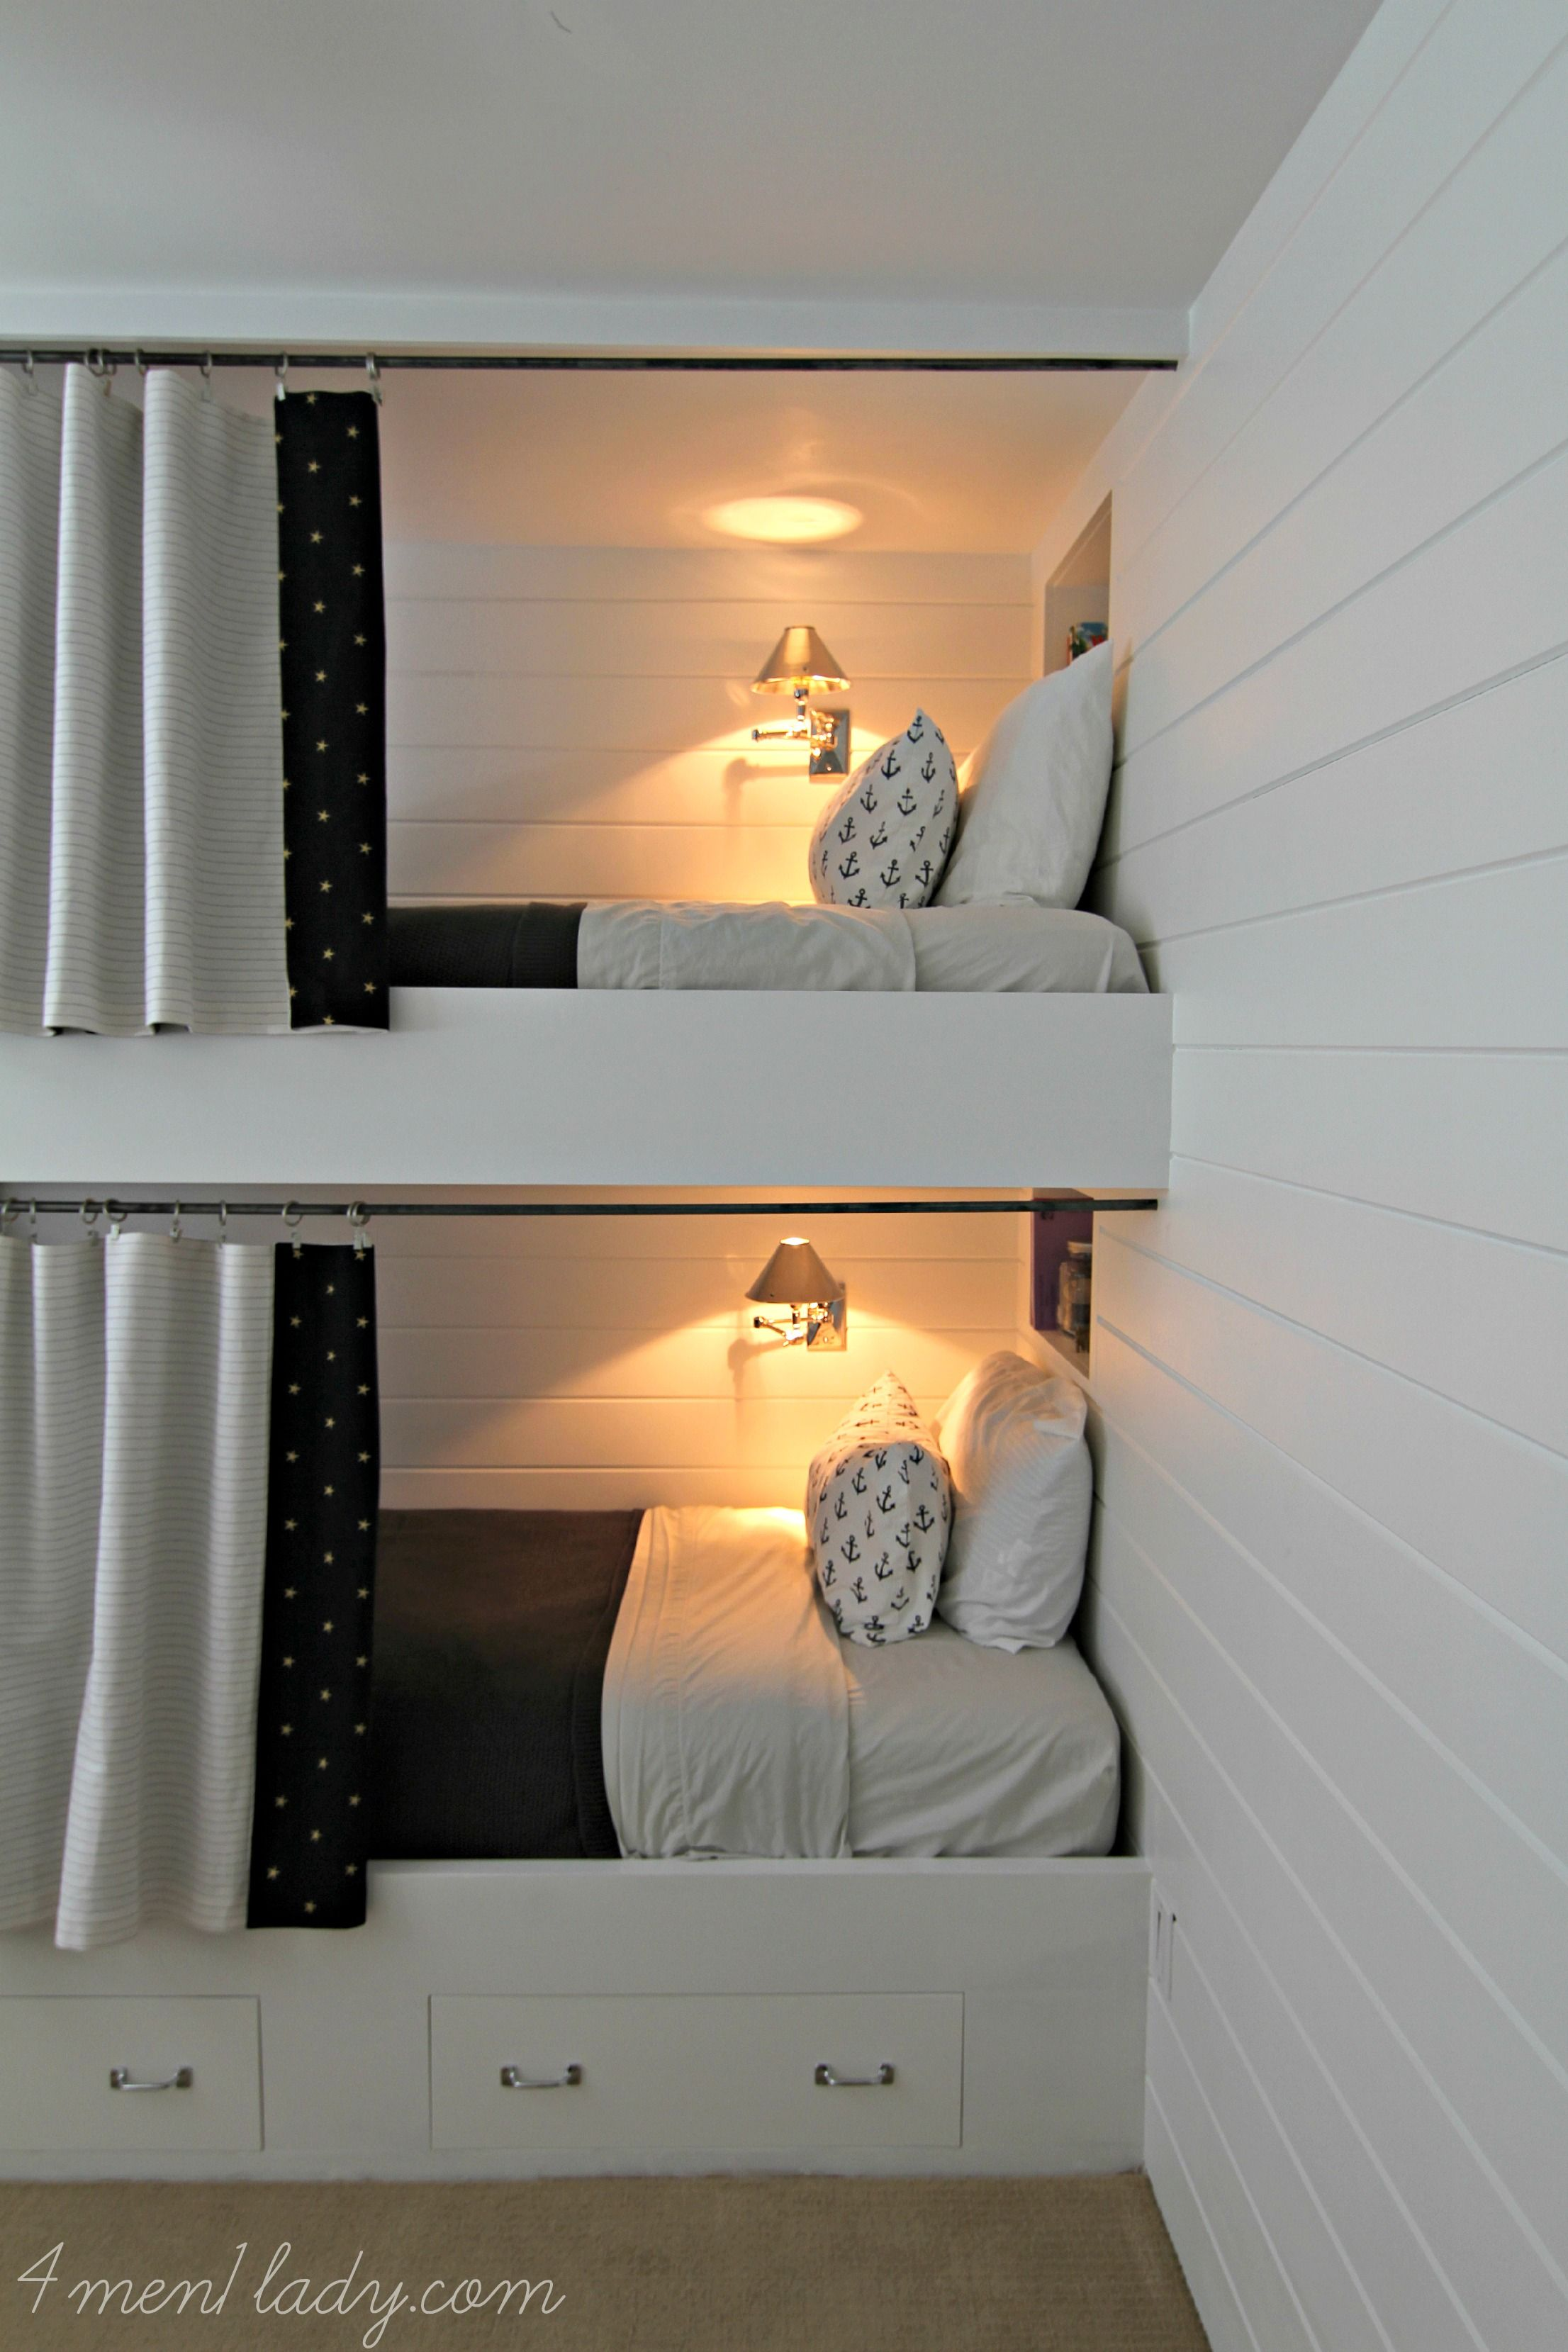 Bunk Beds And Bedroom Reveal Inredning Rum Inredning Sovrumsideer